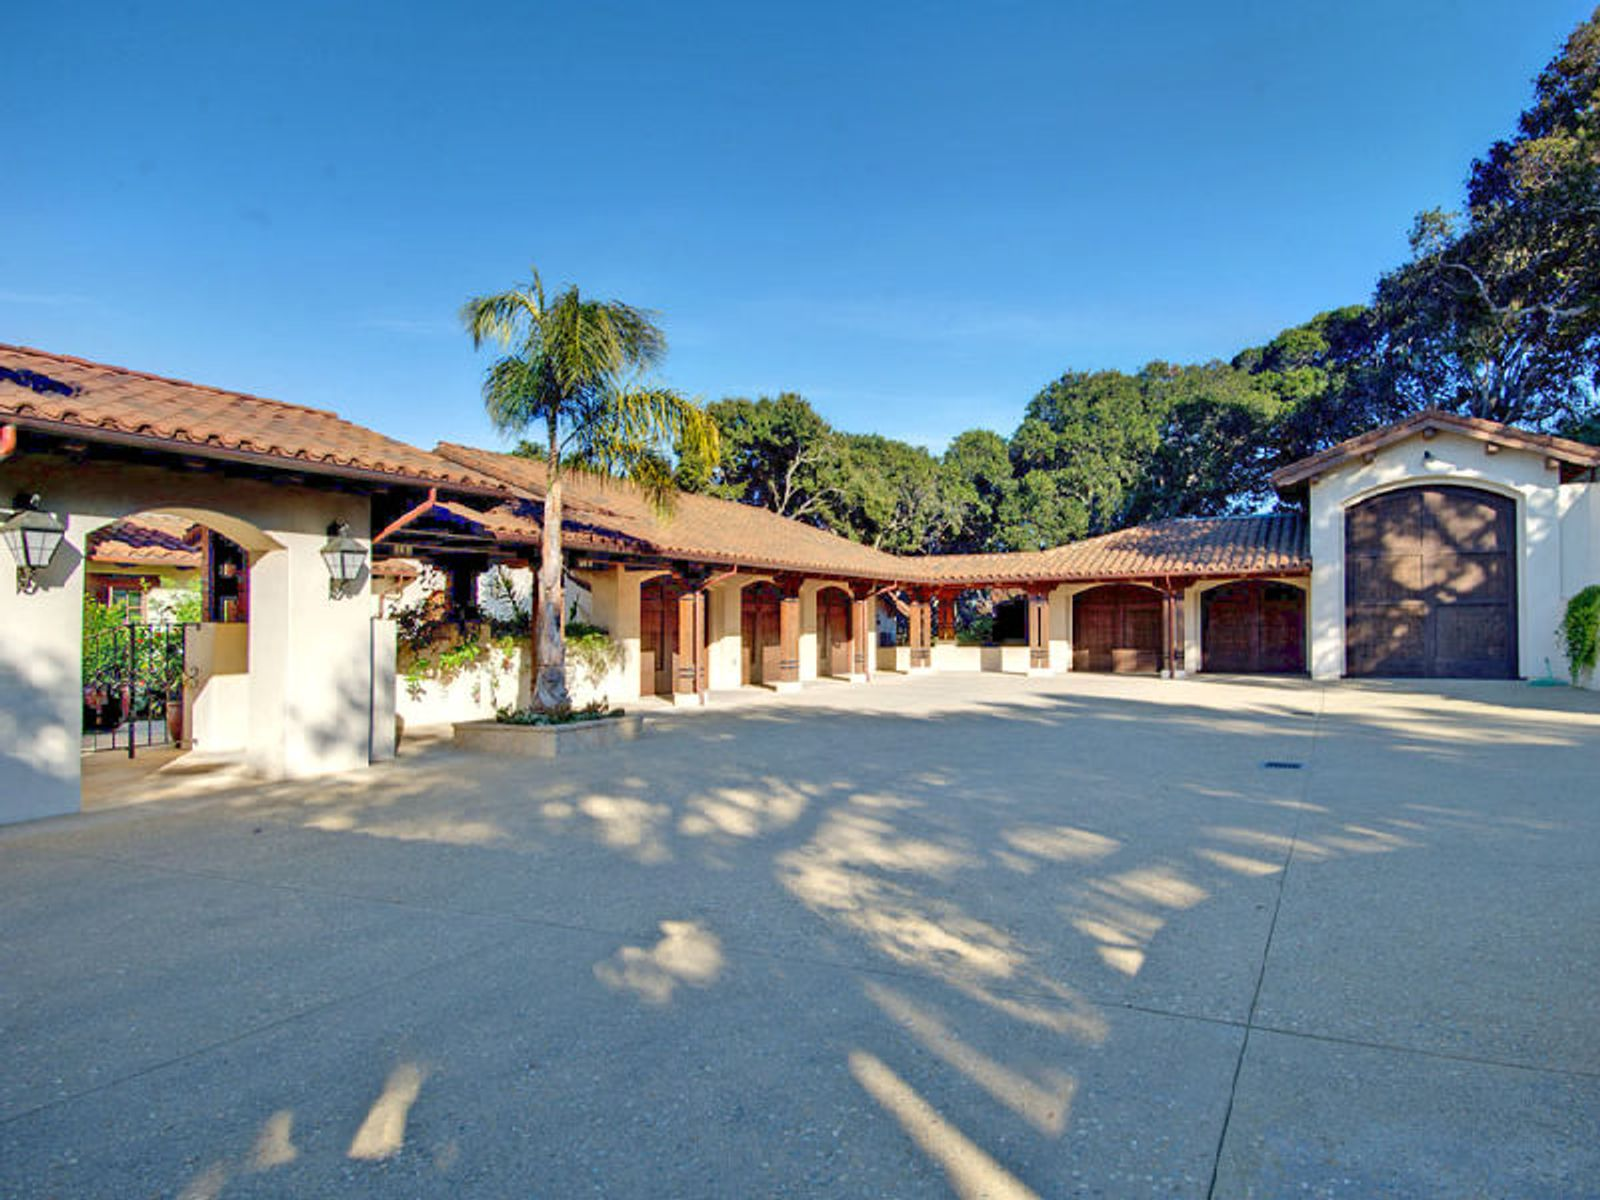 Spanish-California Hacienda